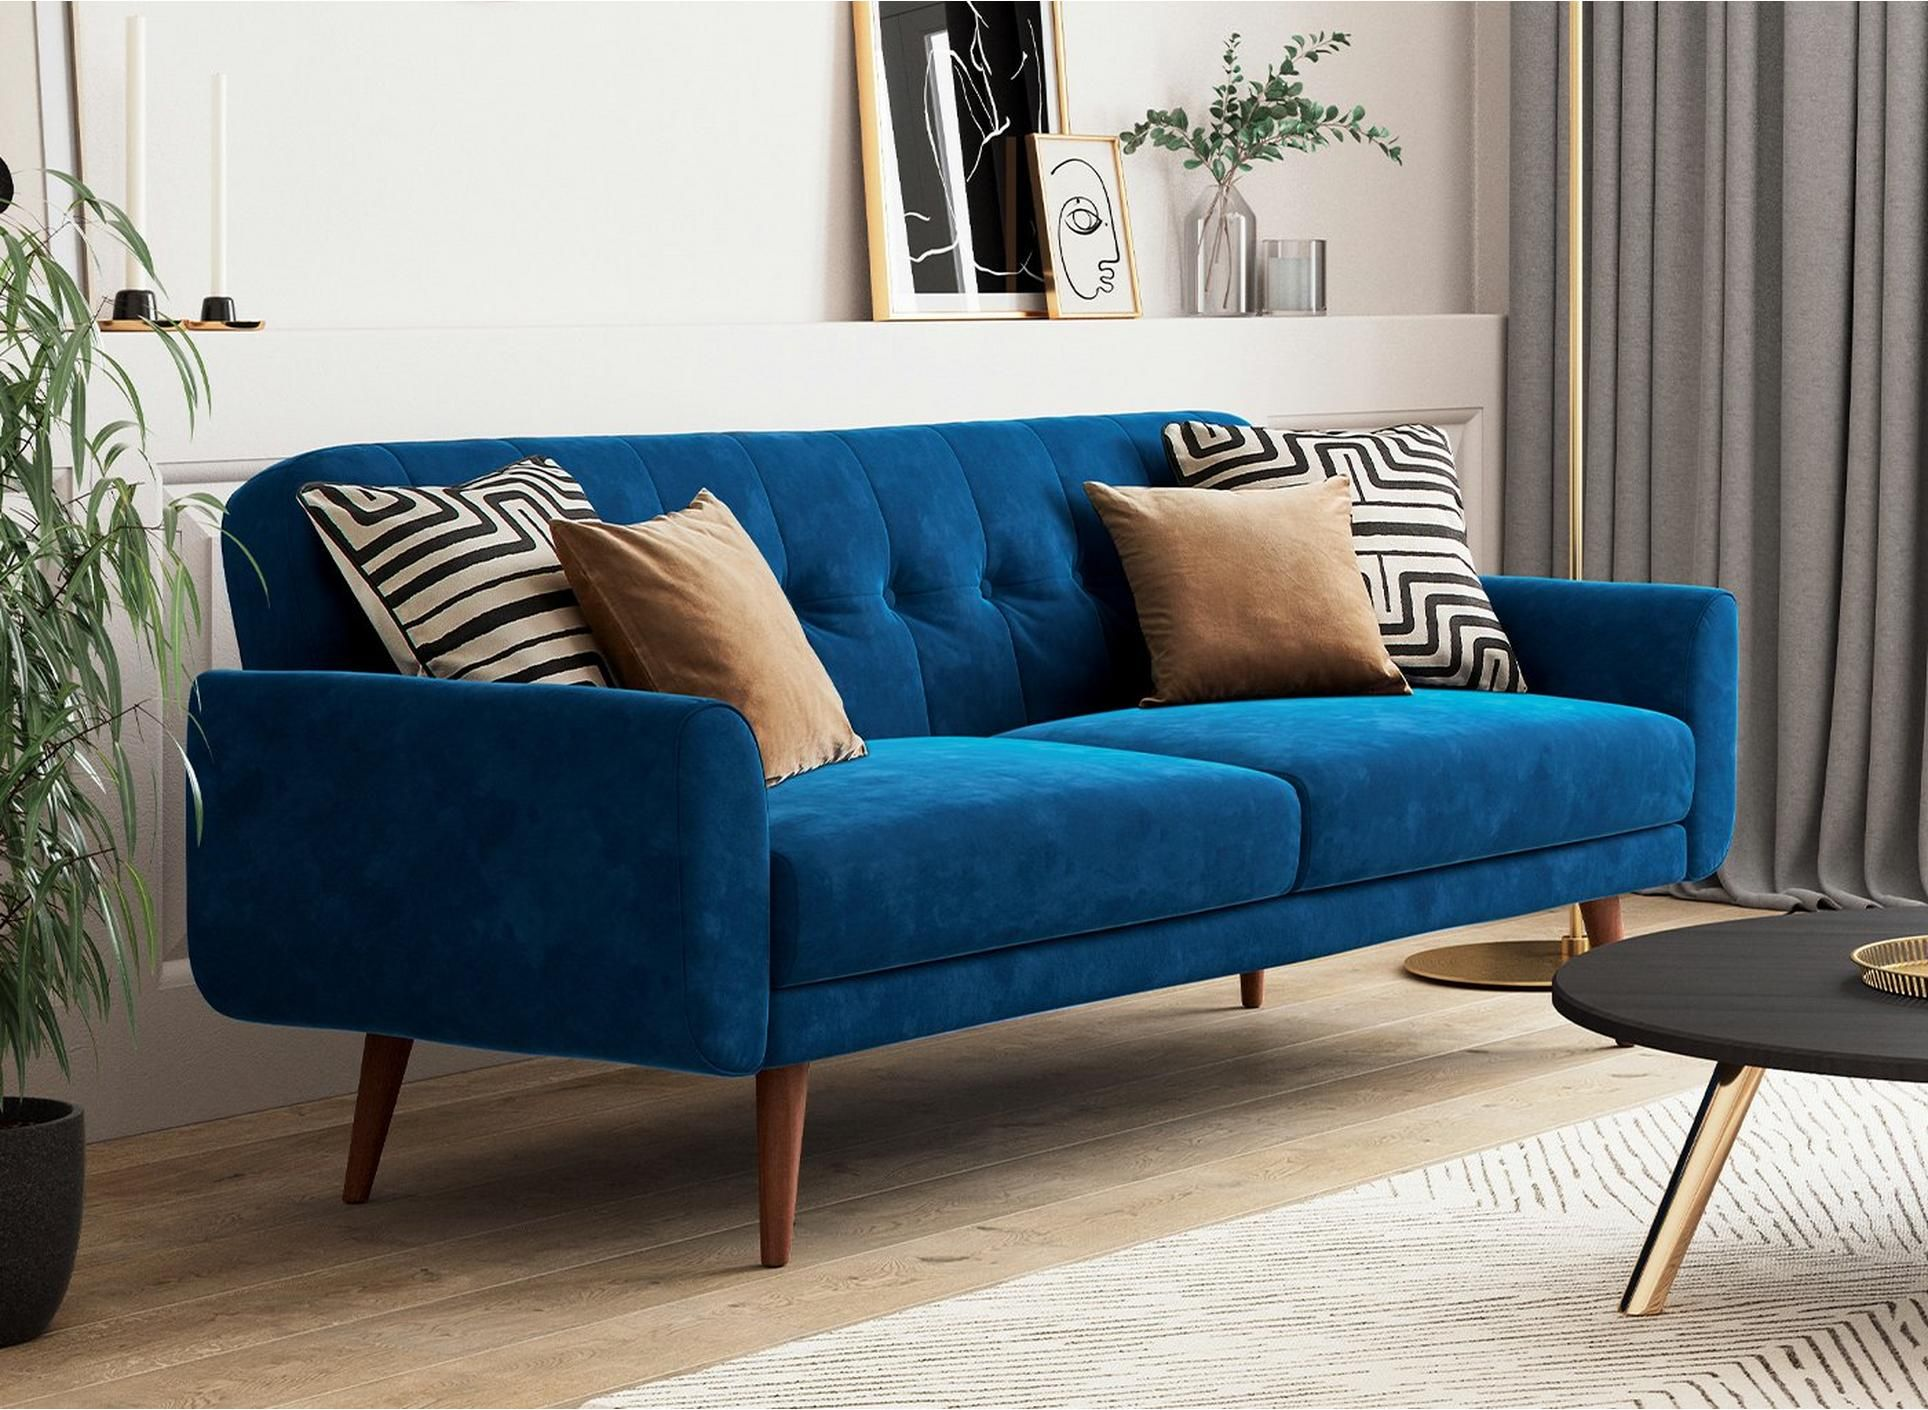 Gallway 3 Seater Clic Clac Sofa Bed In